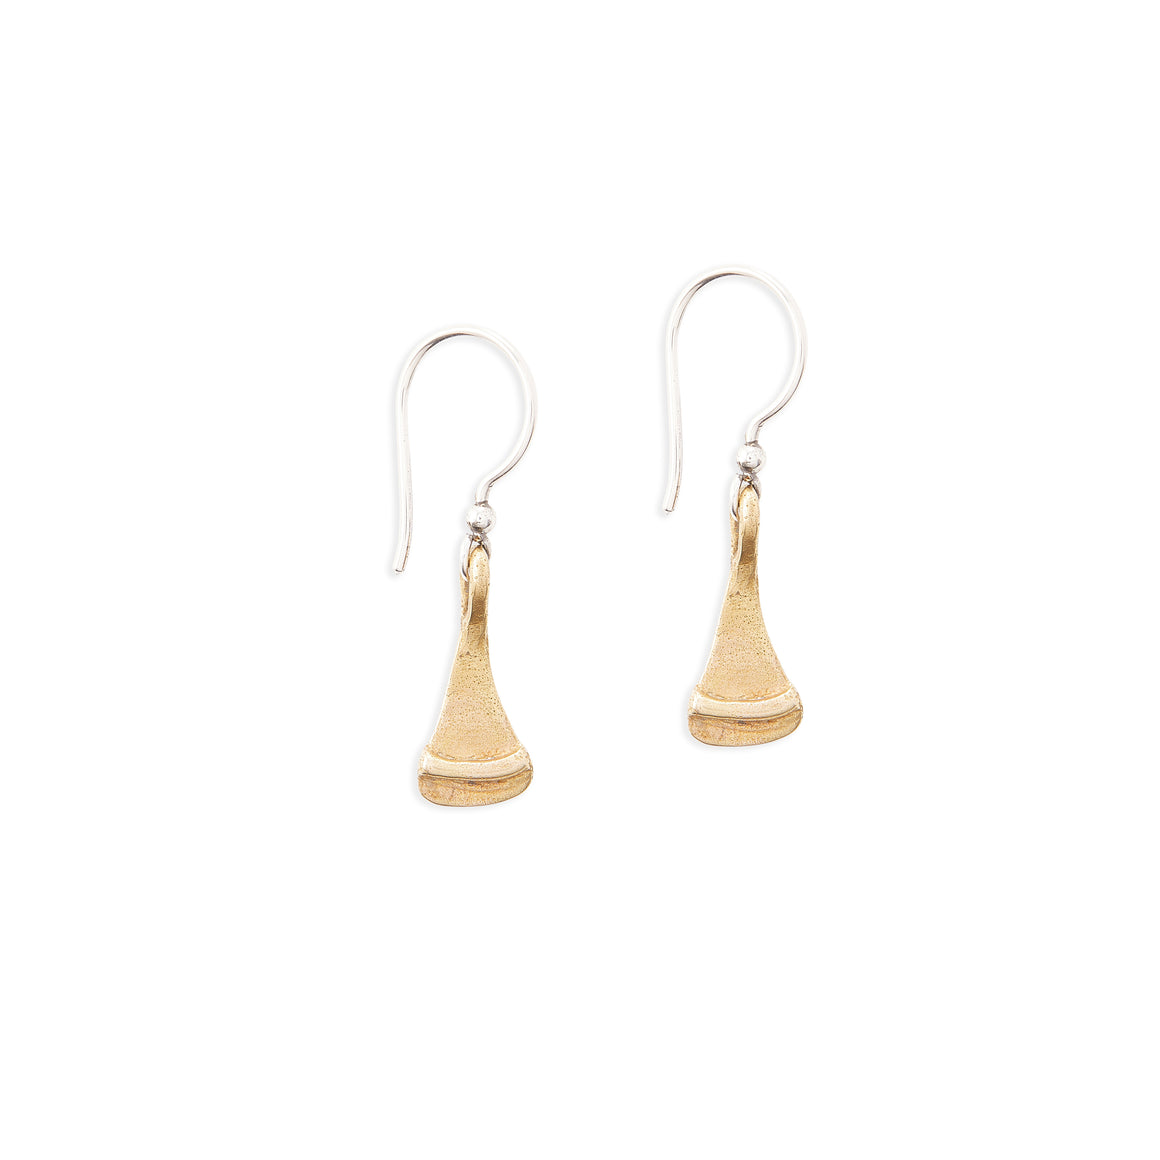 Olwen Earrings